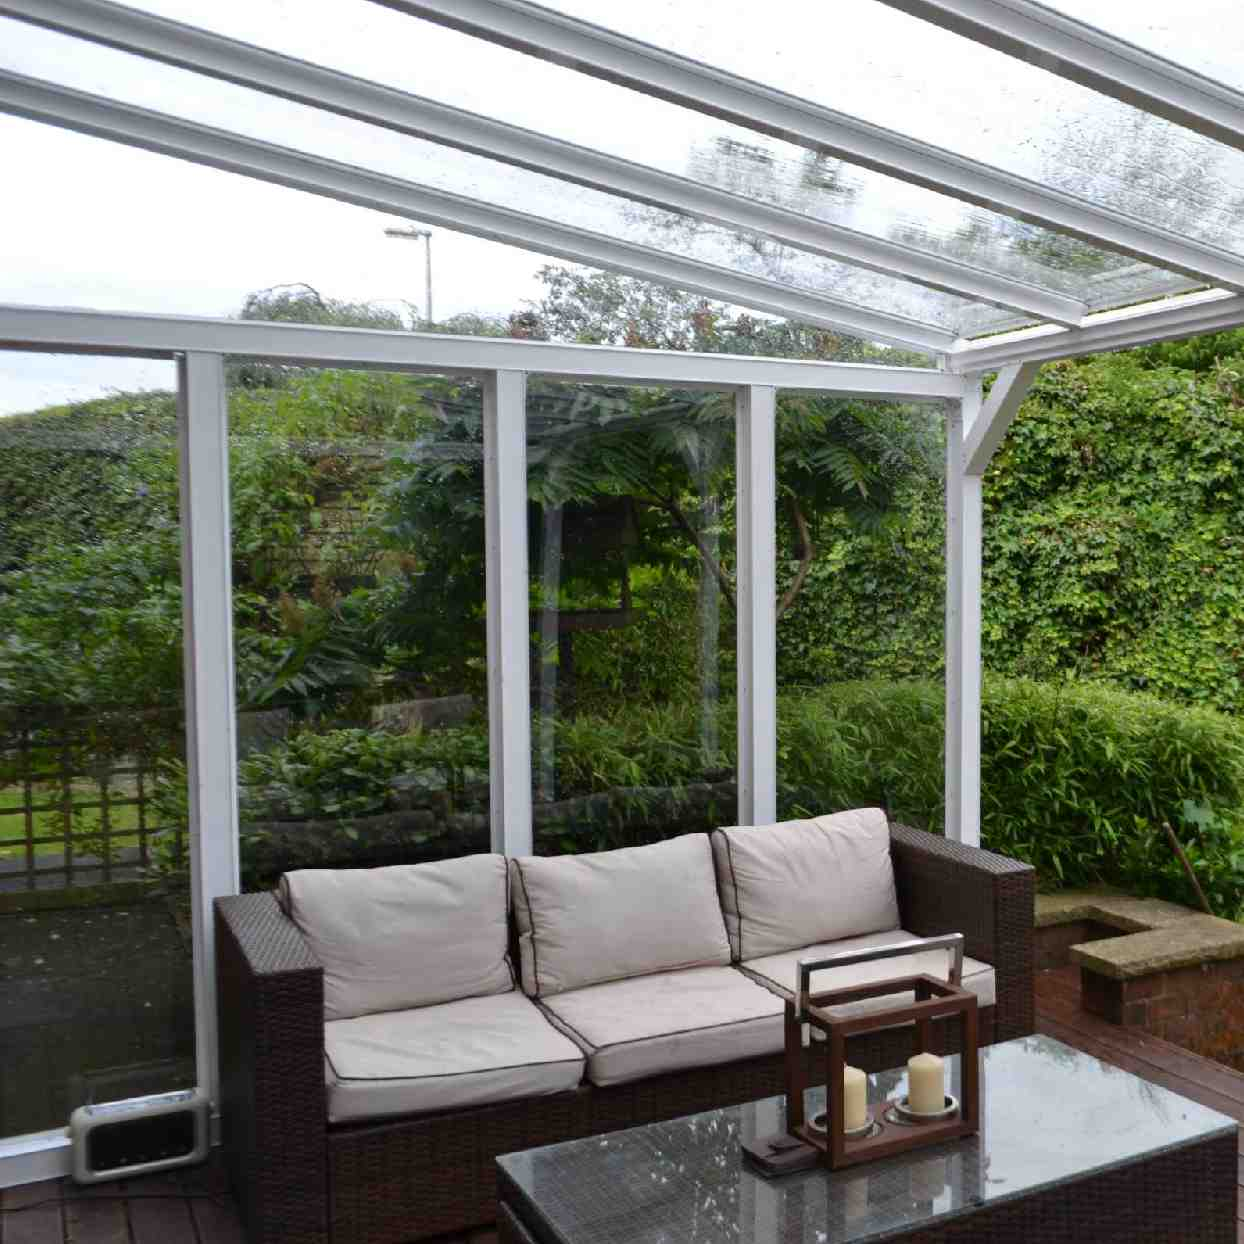 Buy Omega Verandah with 6mm Glass Clear Plate Polycarbonate Glazing - 7.0m (W) x 3.0m (P), (4) Supporting Posts online today